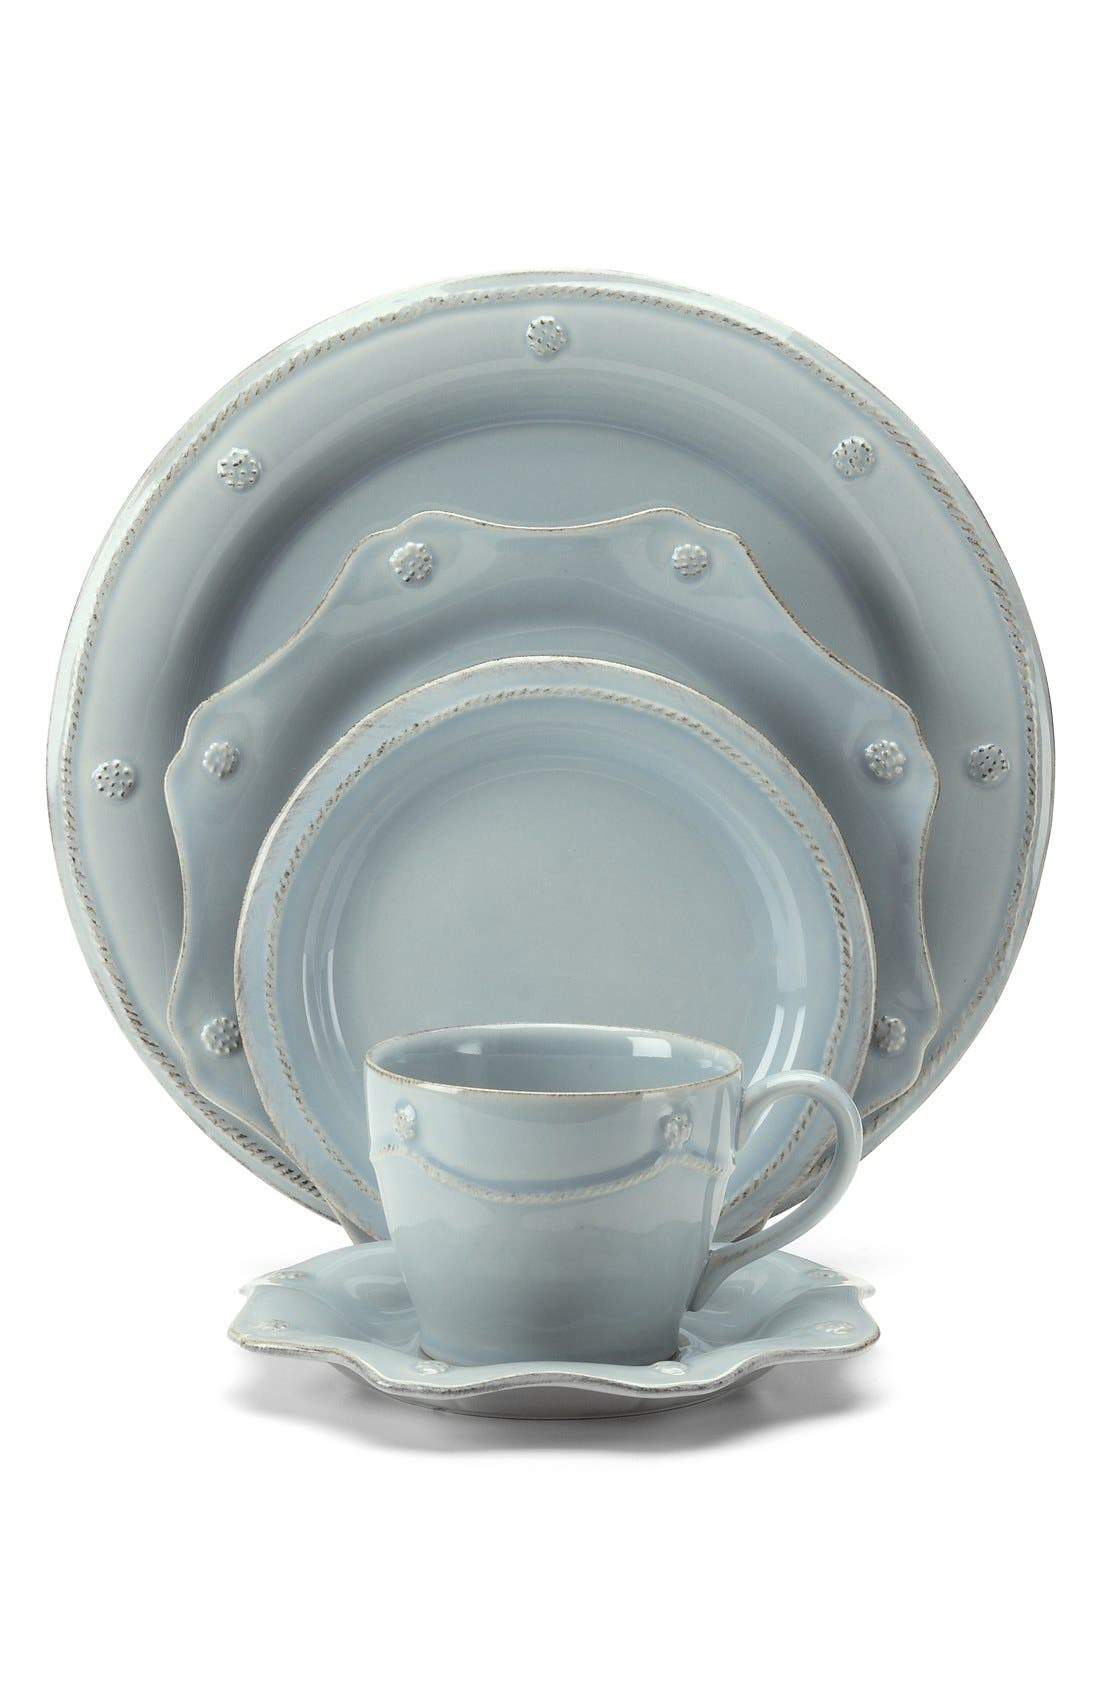 'Berry and Thread' 5-Piece Ceramic Place Setting,                         Main,                         color, 440